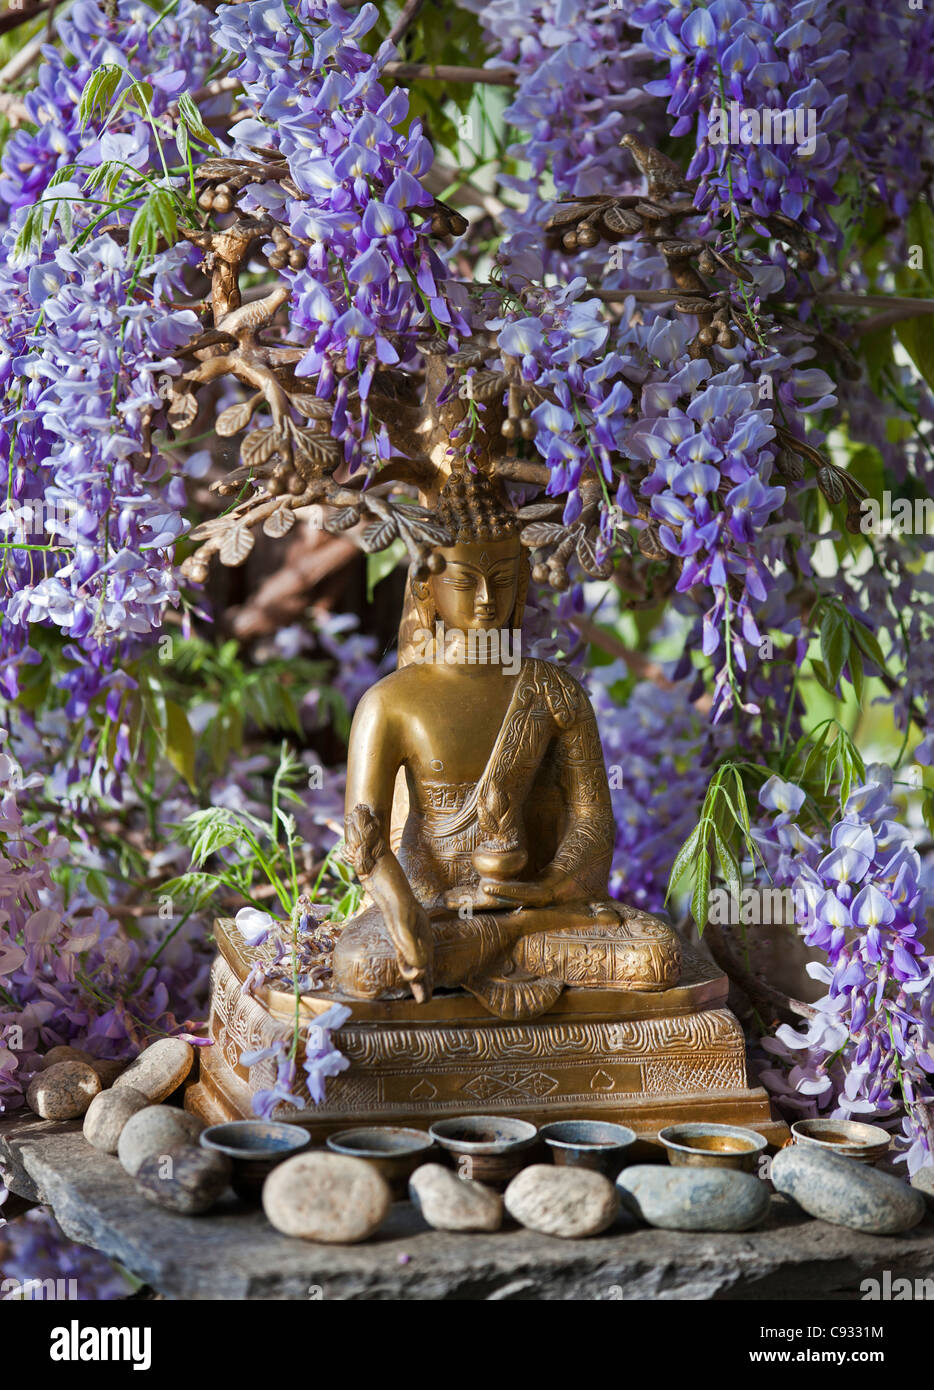 A small Buddha shrine surrounded by wisteria in the Hotel Gangtey Palace. - Stock Image